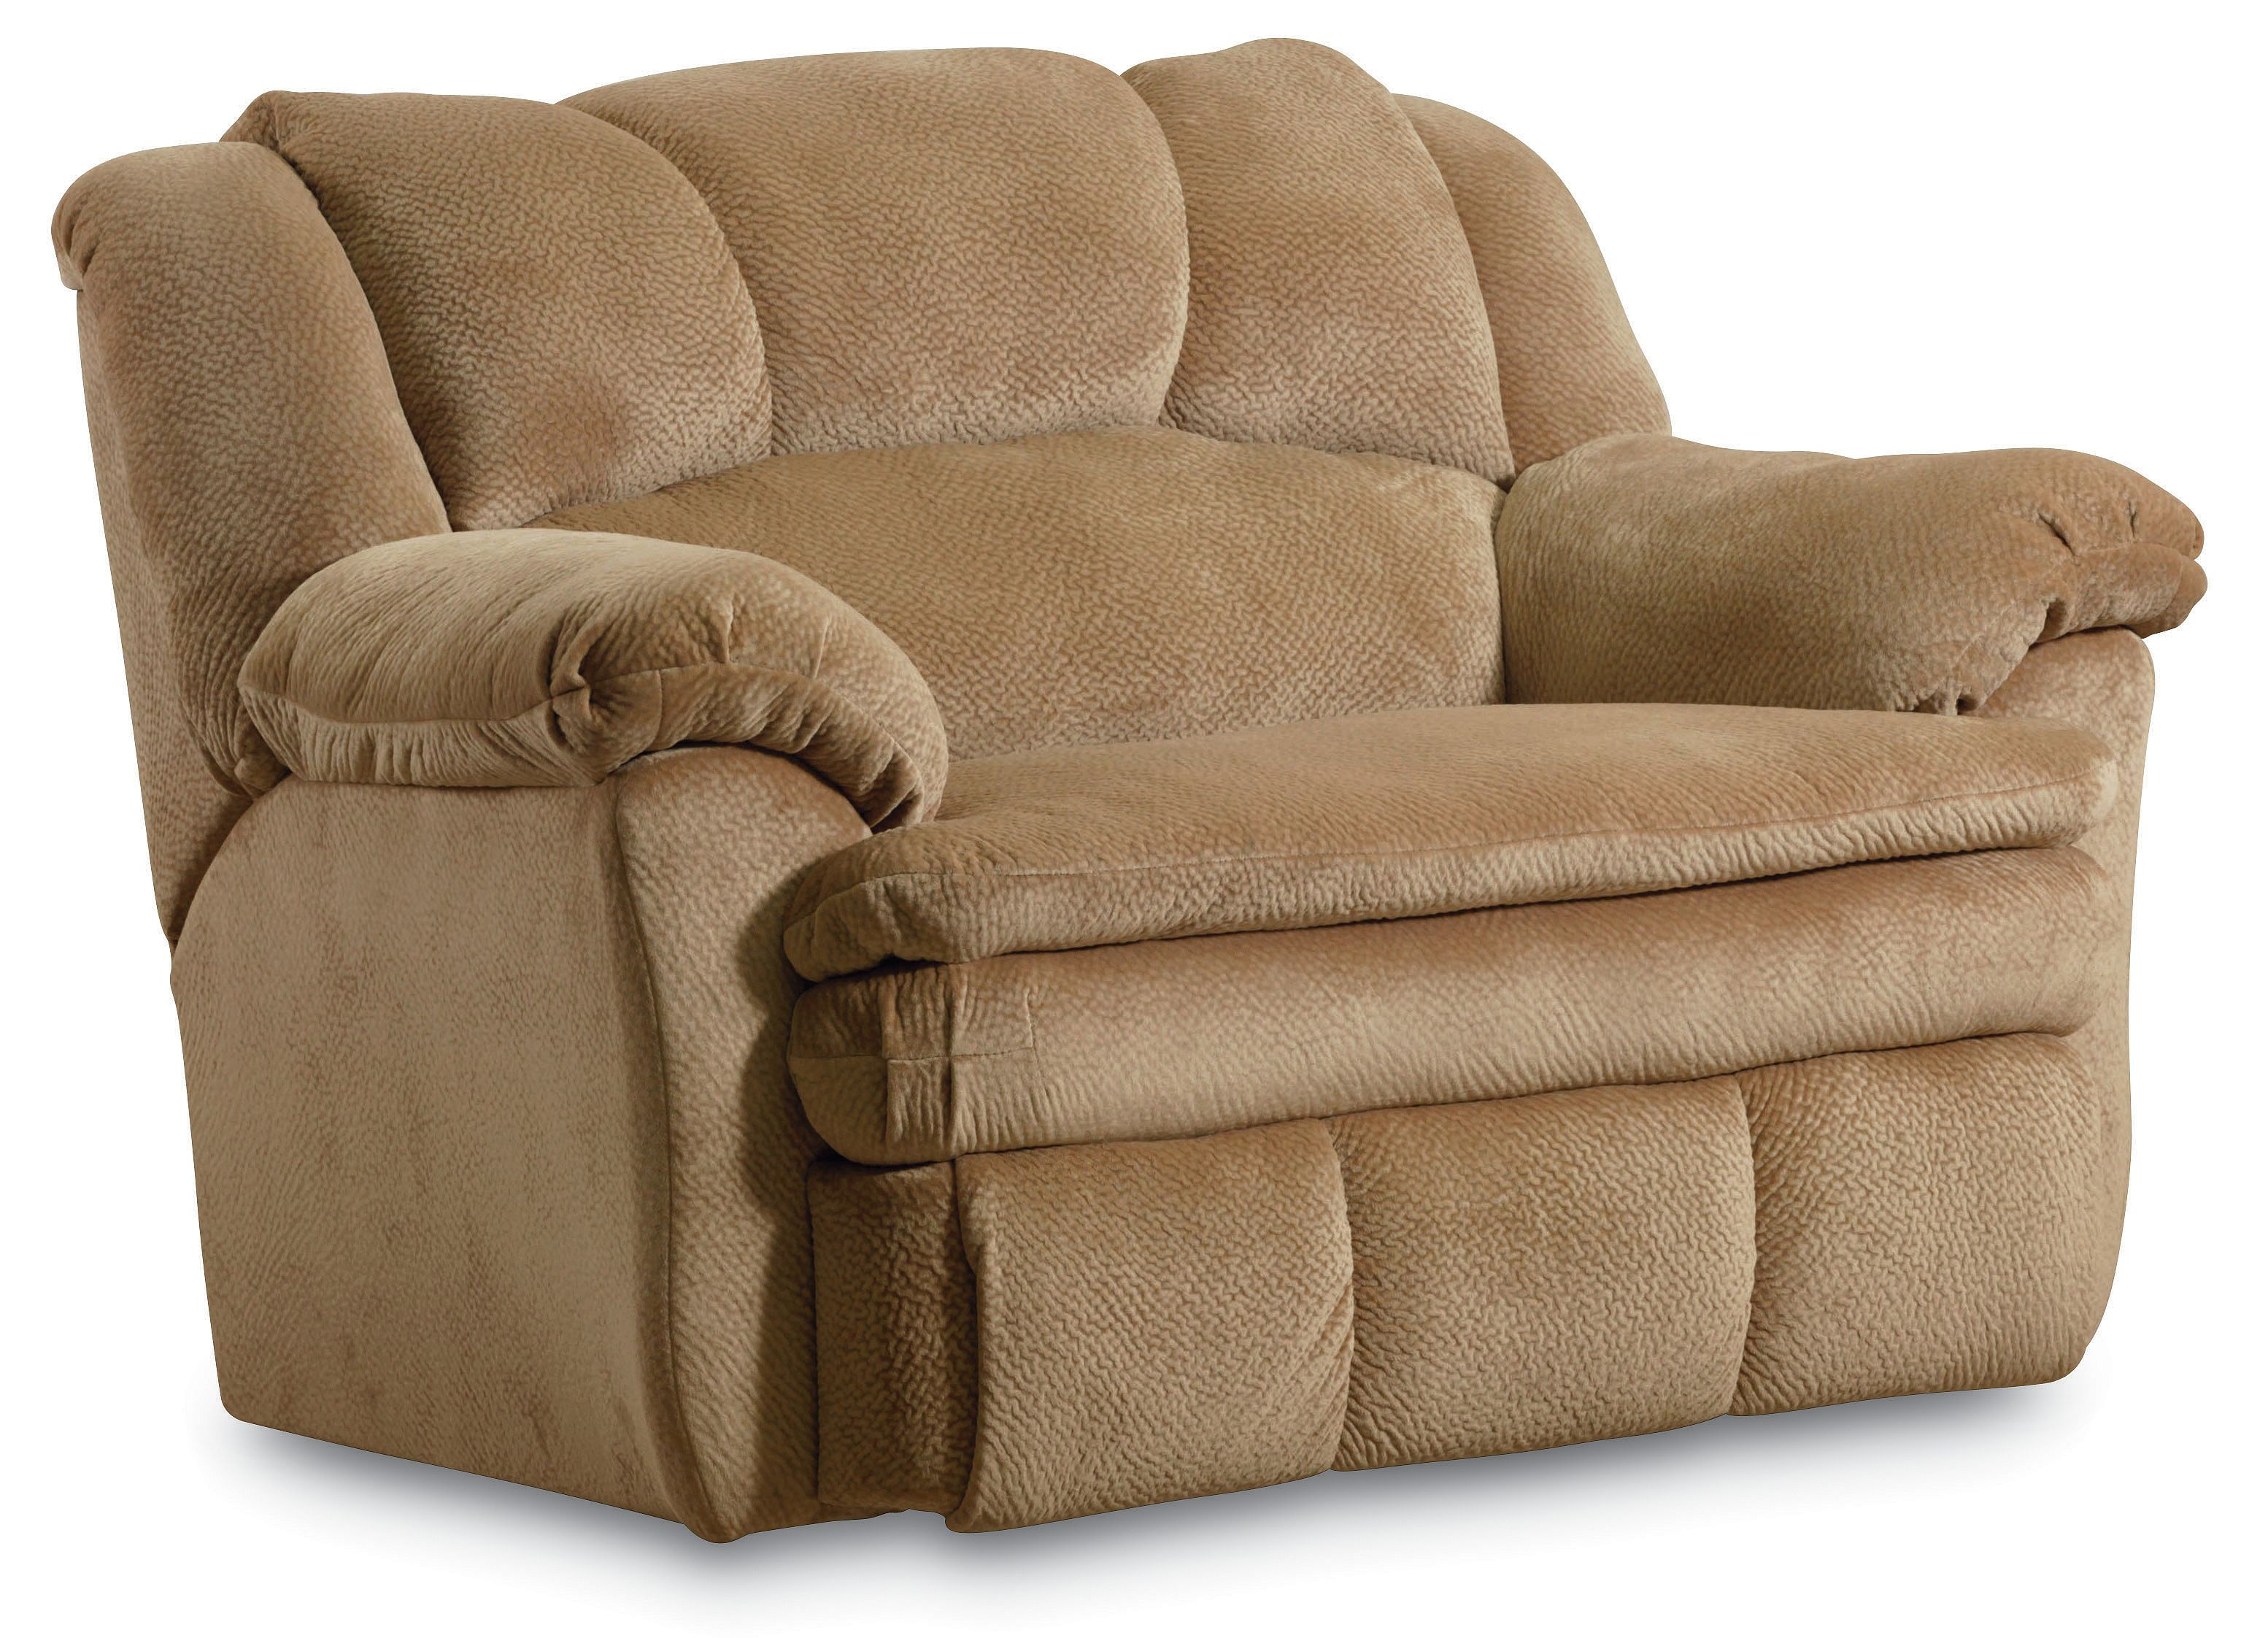 Super Cameron Double Reclining Sofa 344 39 Sofas And Sectionals Pdpeps Interior Chair Design Pdpepsorg